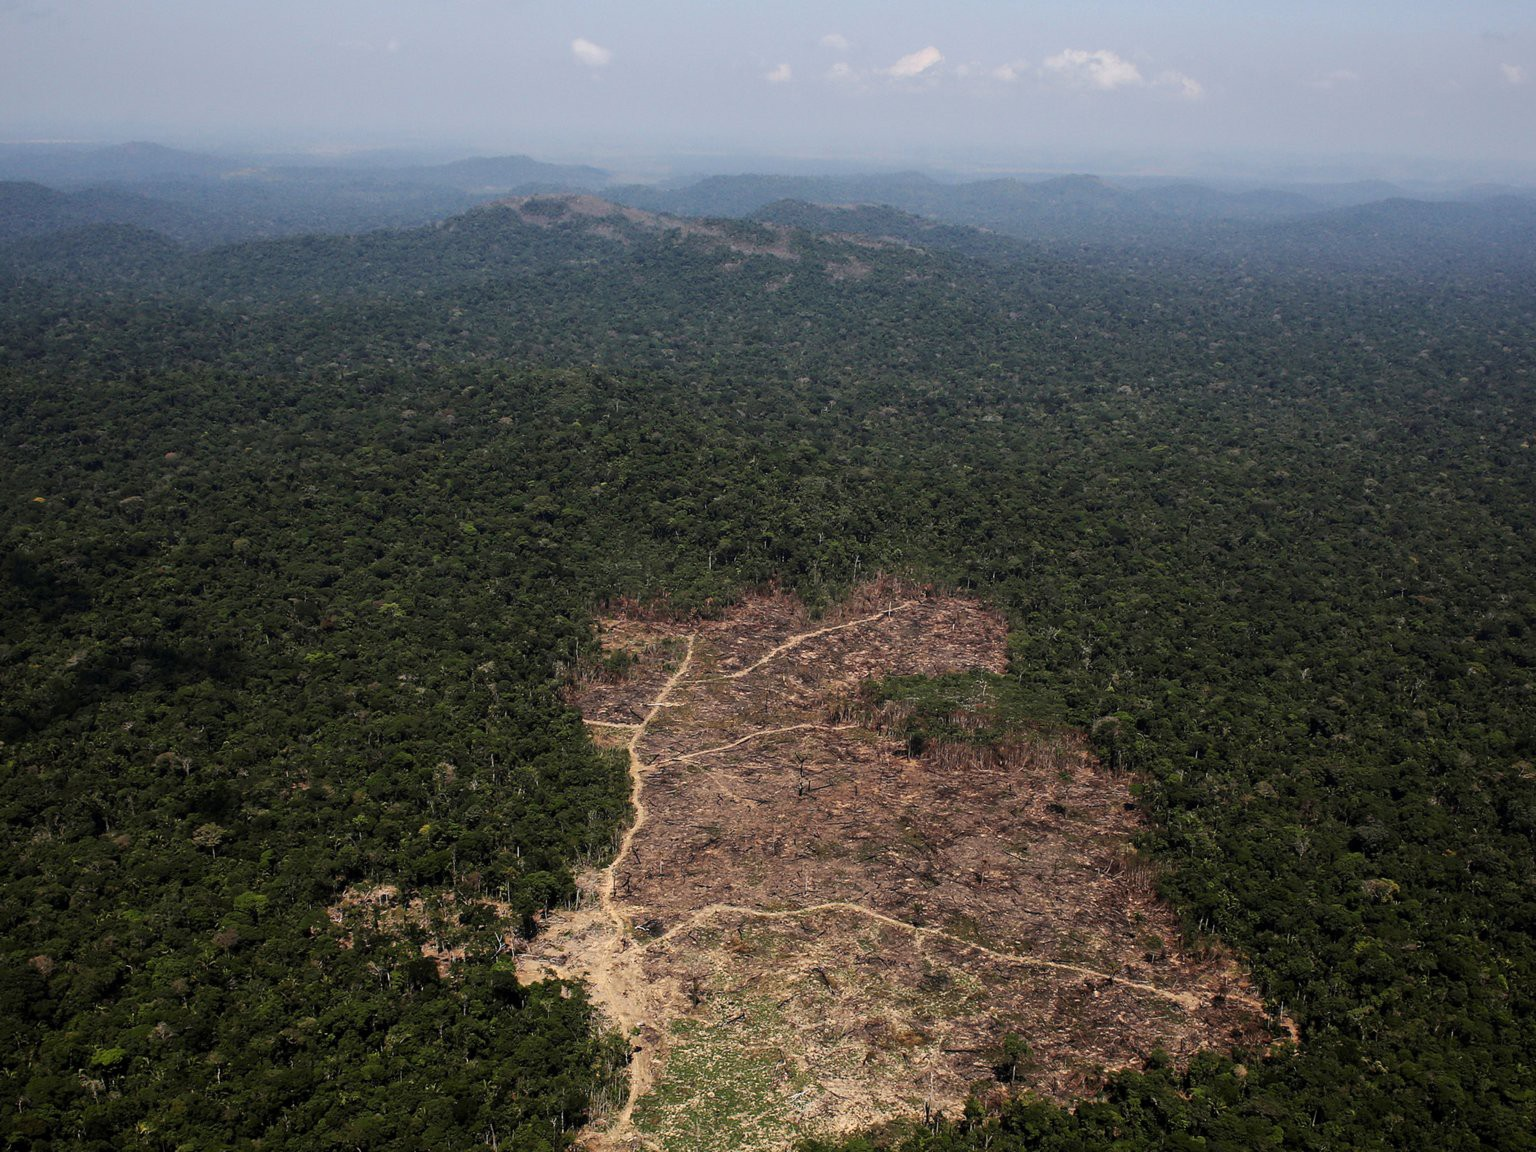 FILE PHOTO: An aerial view of a tract of Amazon jungle recently cleared by loggers and farmers near the city of Novo Progresso, Brazil September 22, 2013. REUTERS/Nacho Doce//File Photo